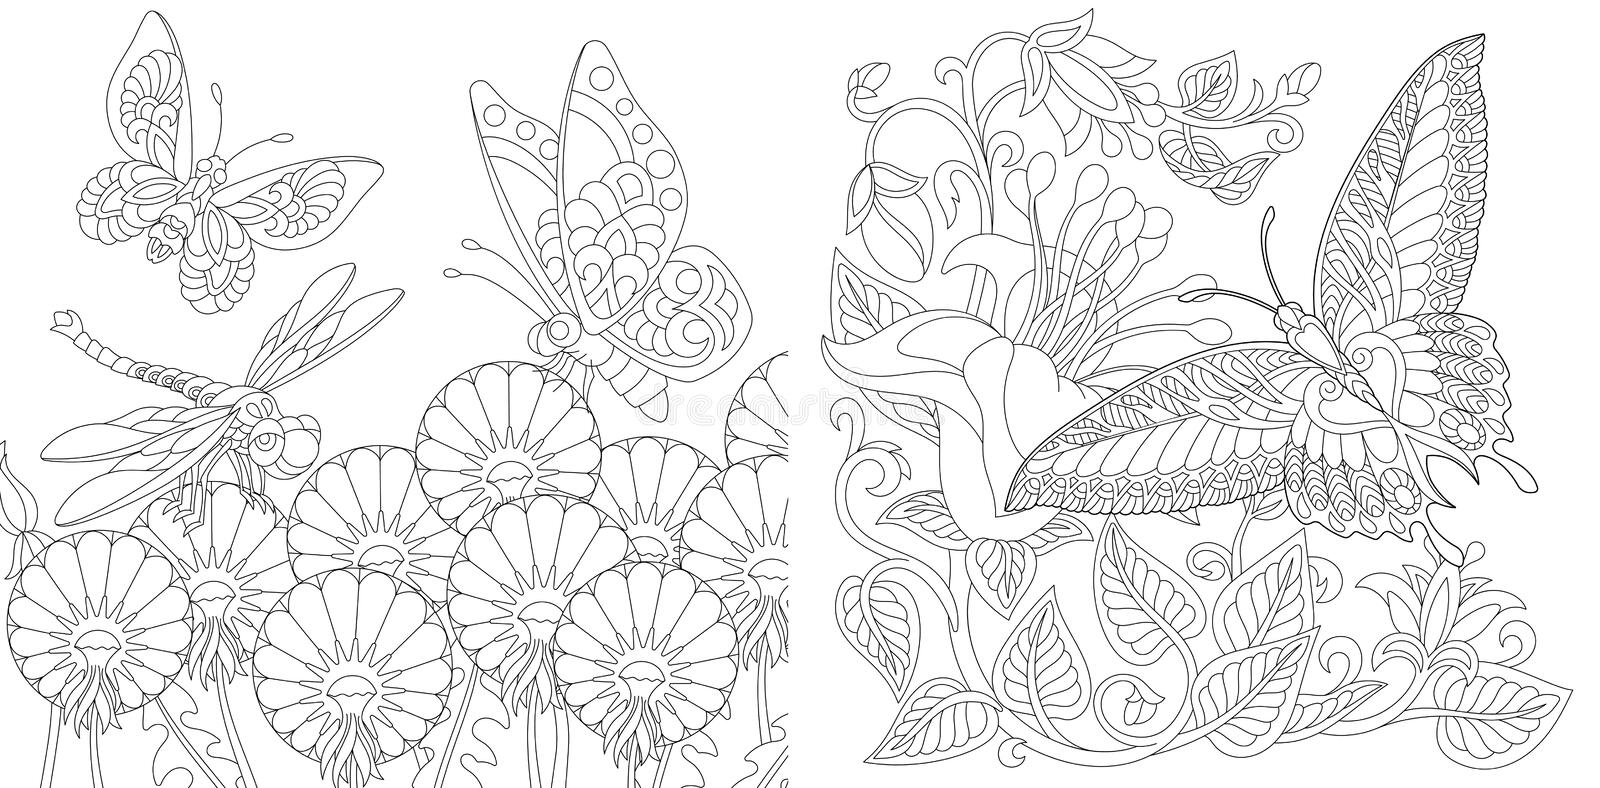 - Butterfly Flowers Coloring Pages Stock Illustrations – 143 Butterfly Flowers  Coloring Pages Stock Illustrations, Vectors & Clipart - Dreamstime